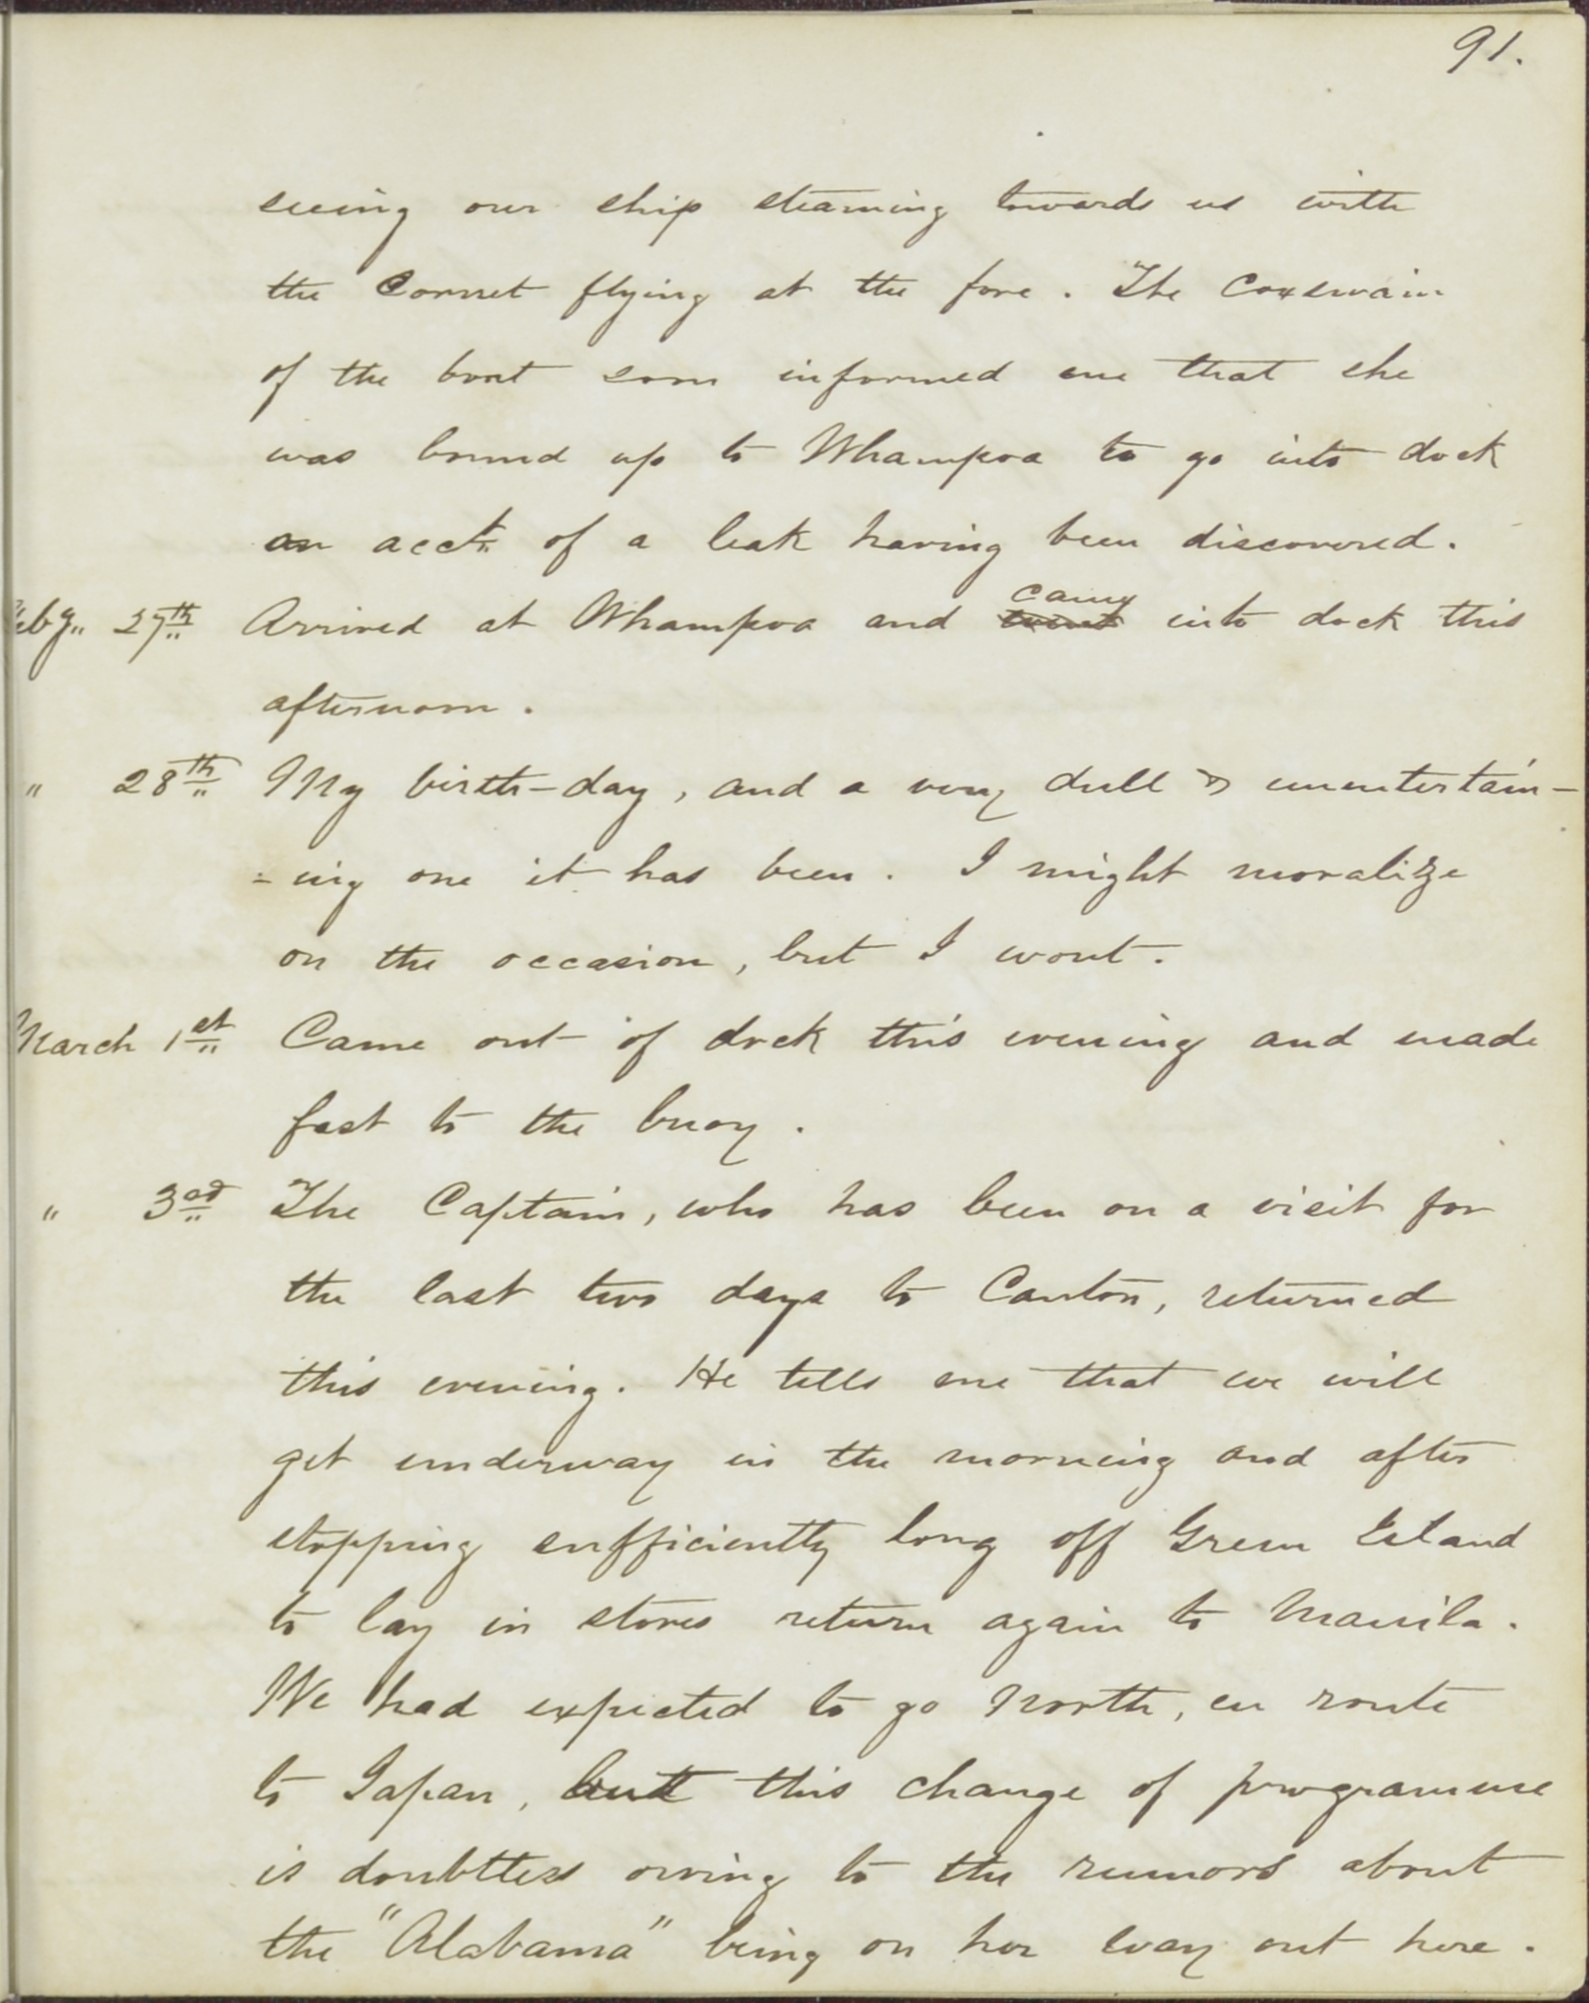 Denby diary entry of March 3, 1863